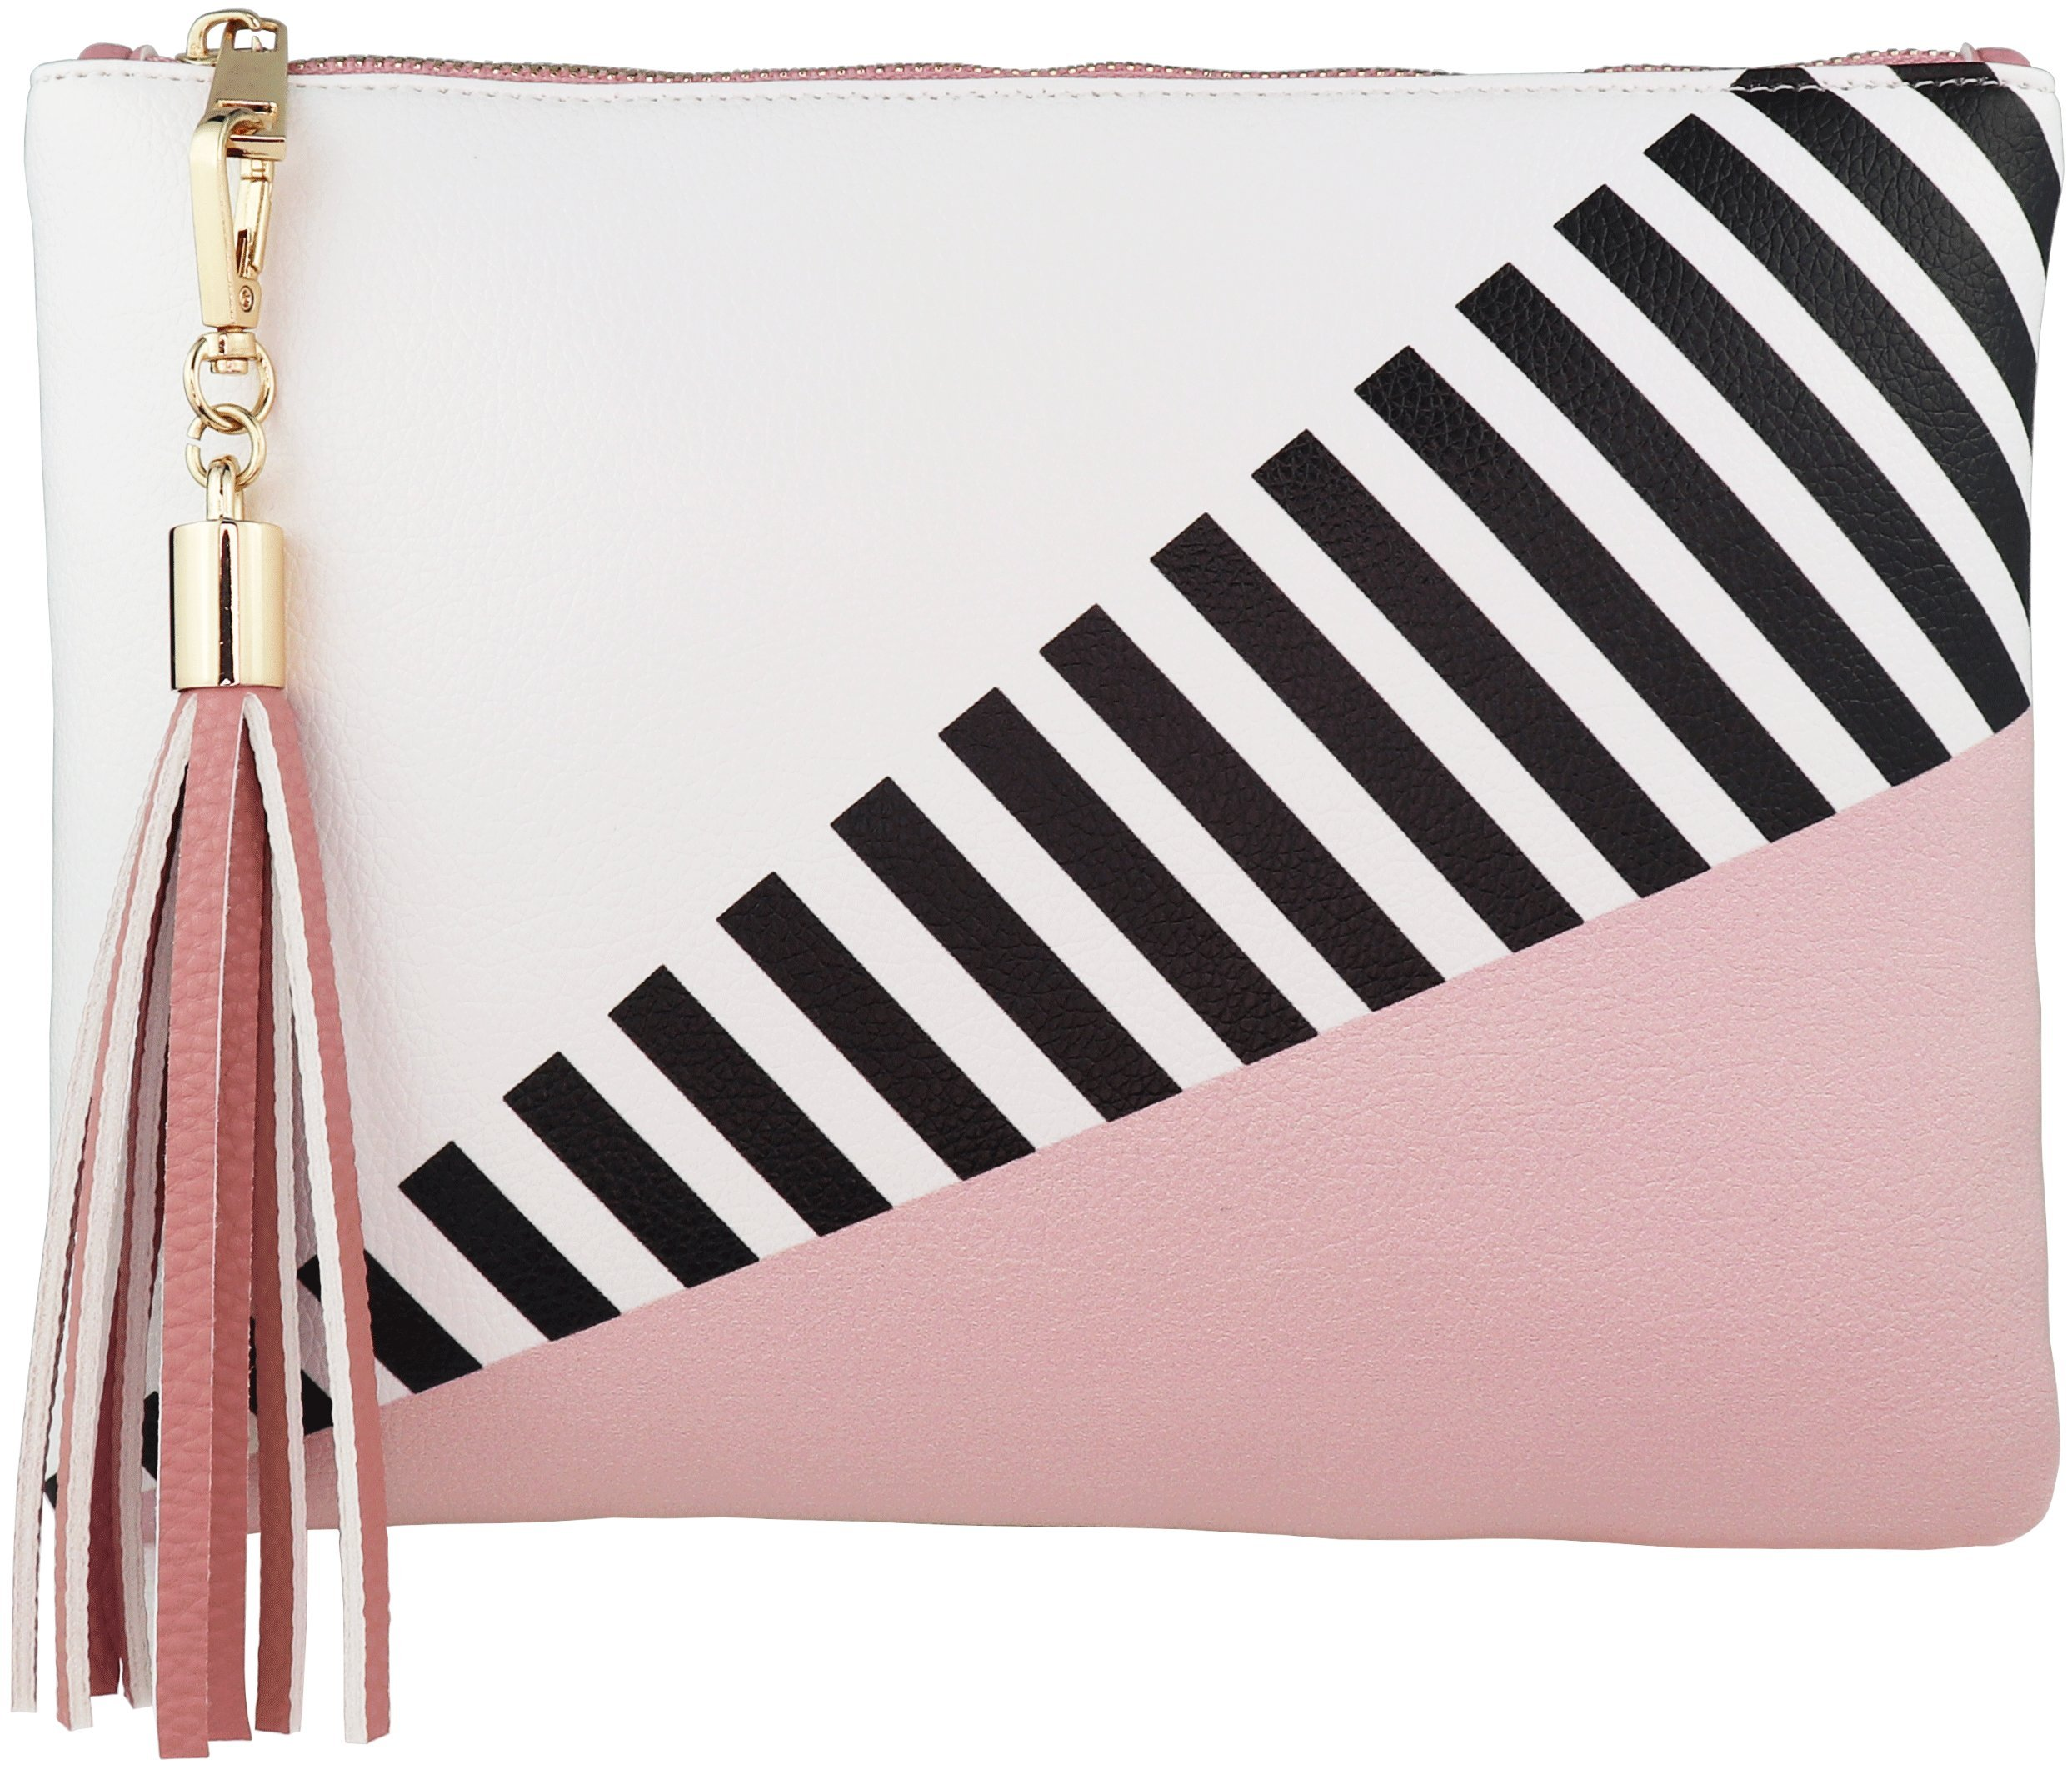 B BRENTANO Vegan Clutch Bag Pouch with Tassel Accent (Blush)